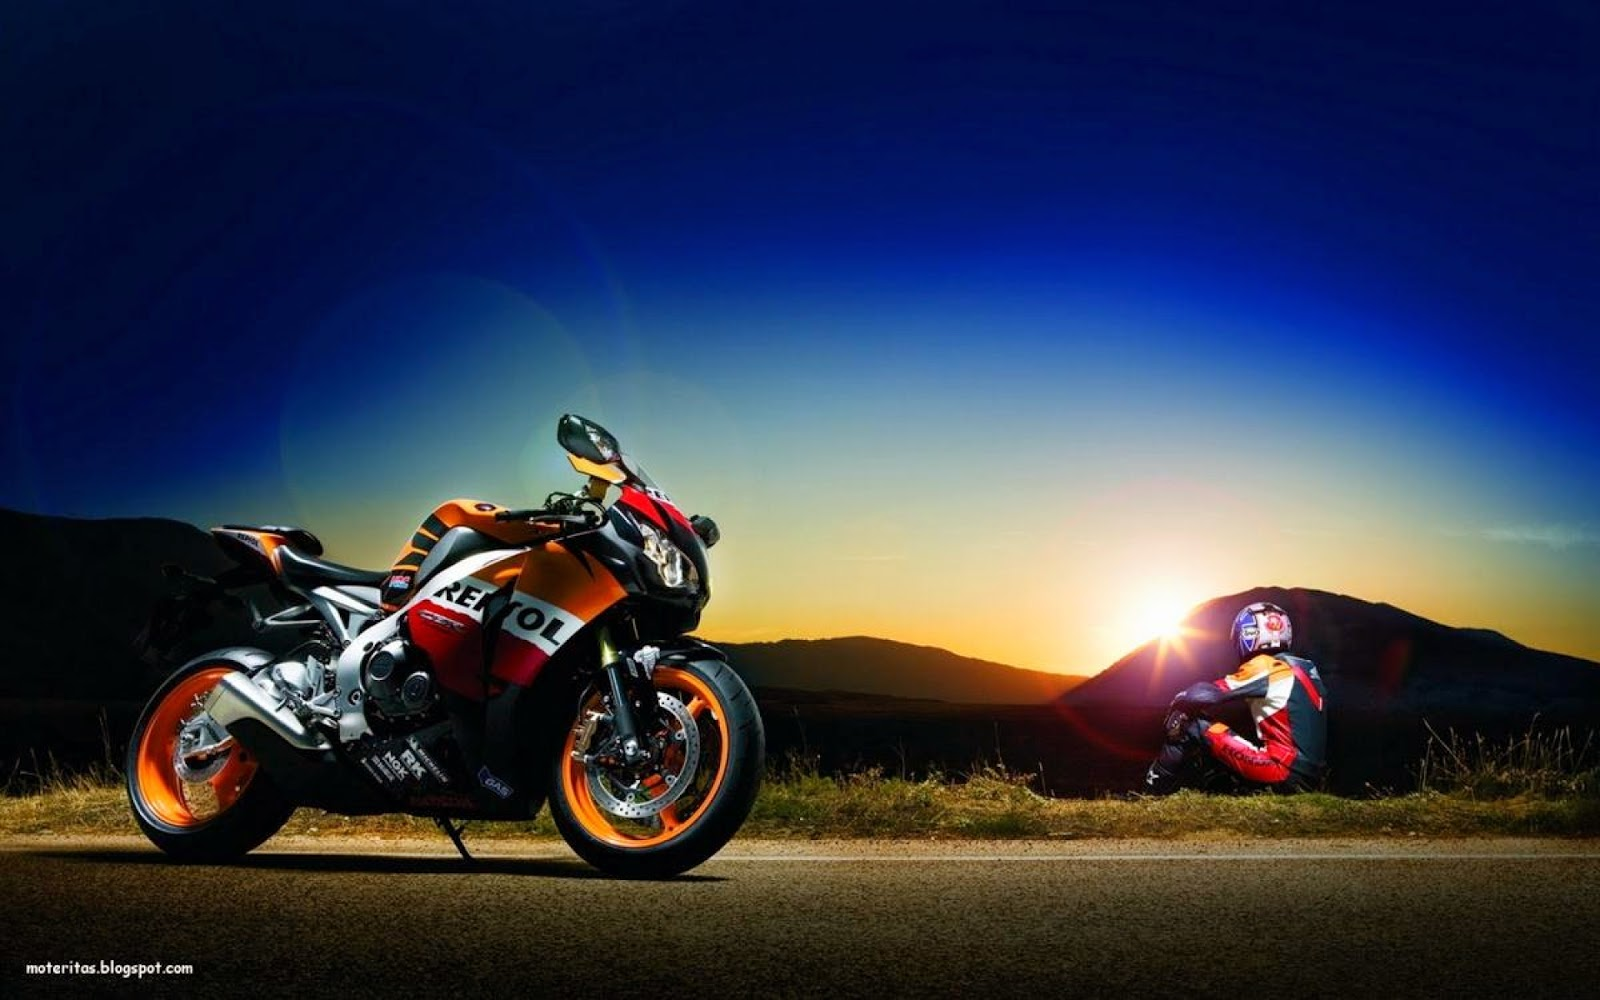 New honda cbr1000rr wallpapers for desktop